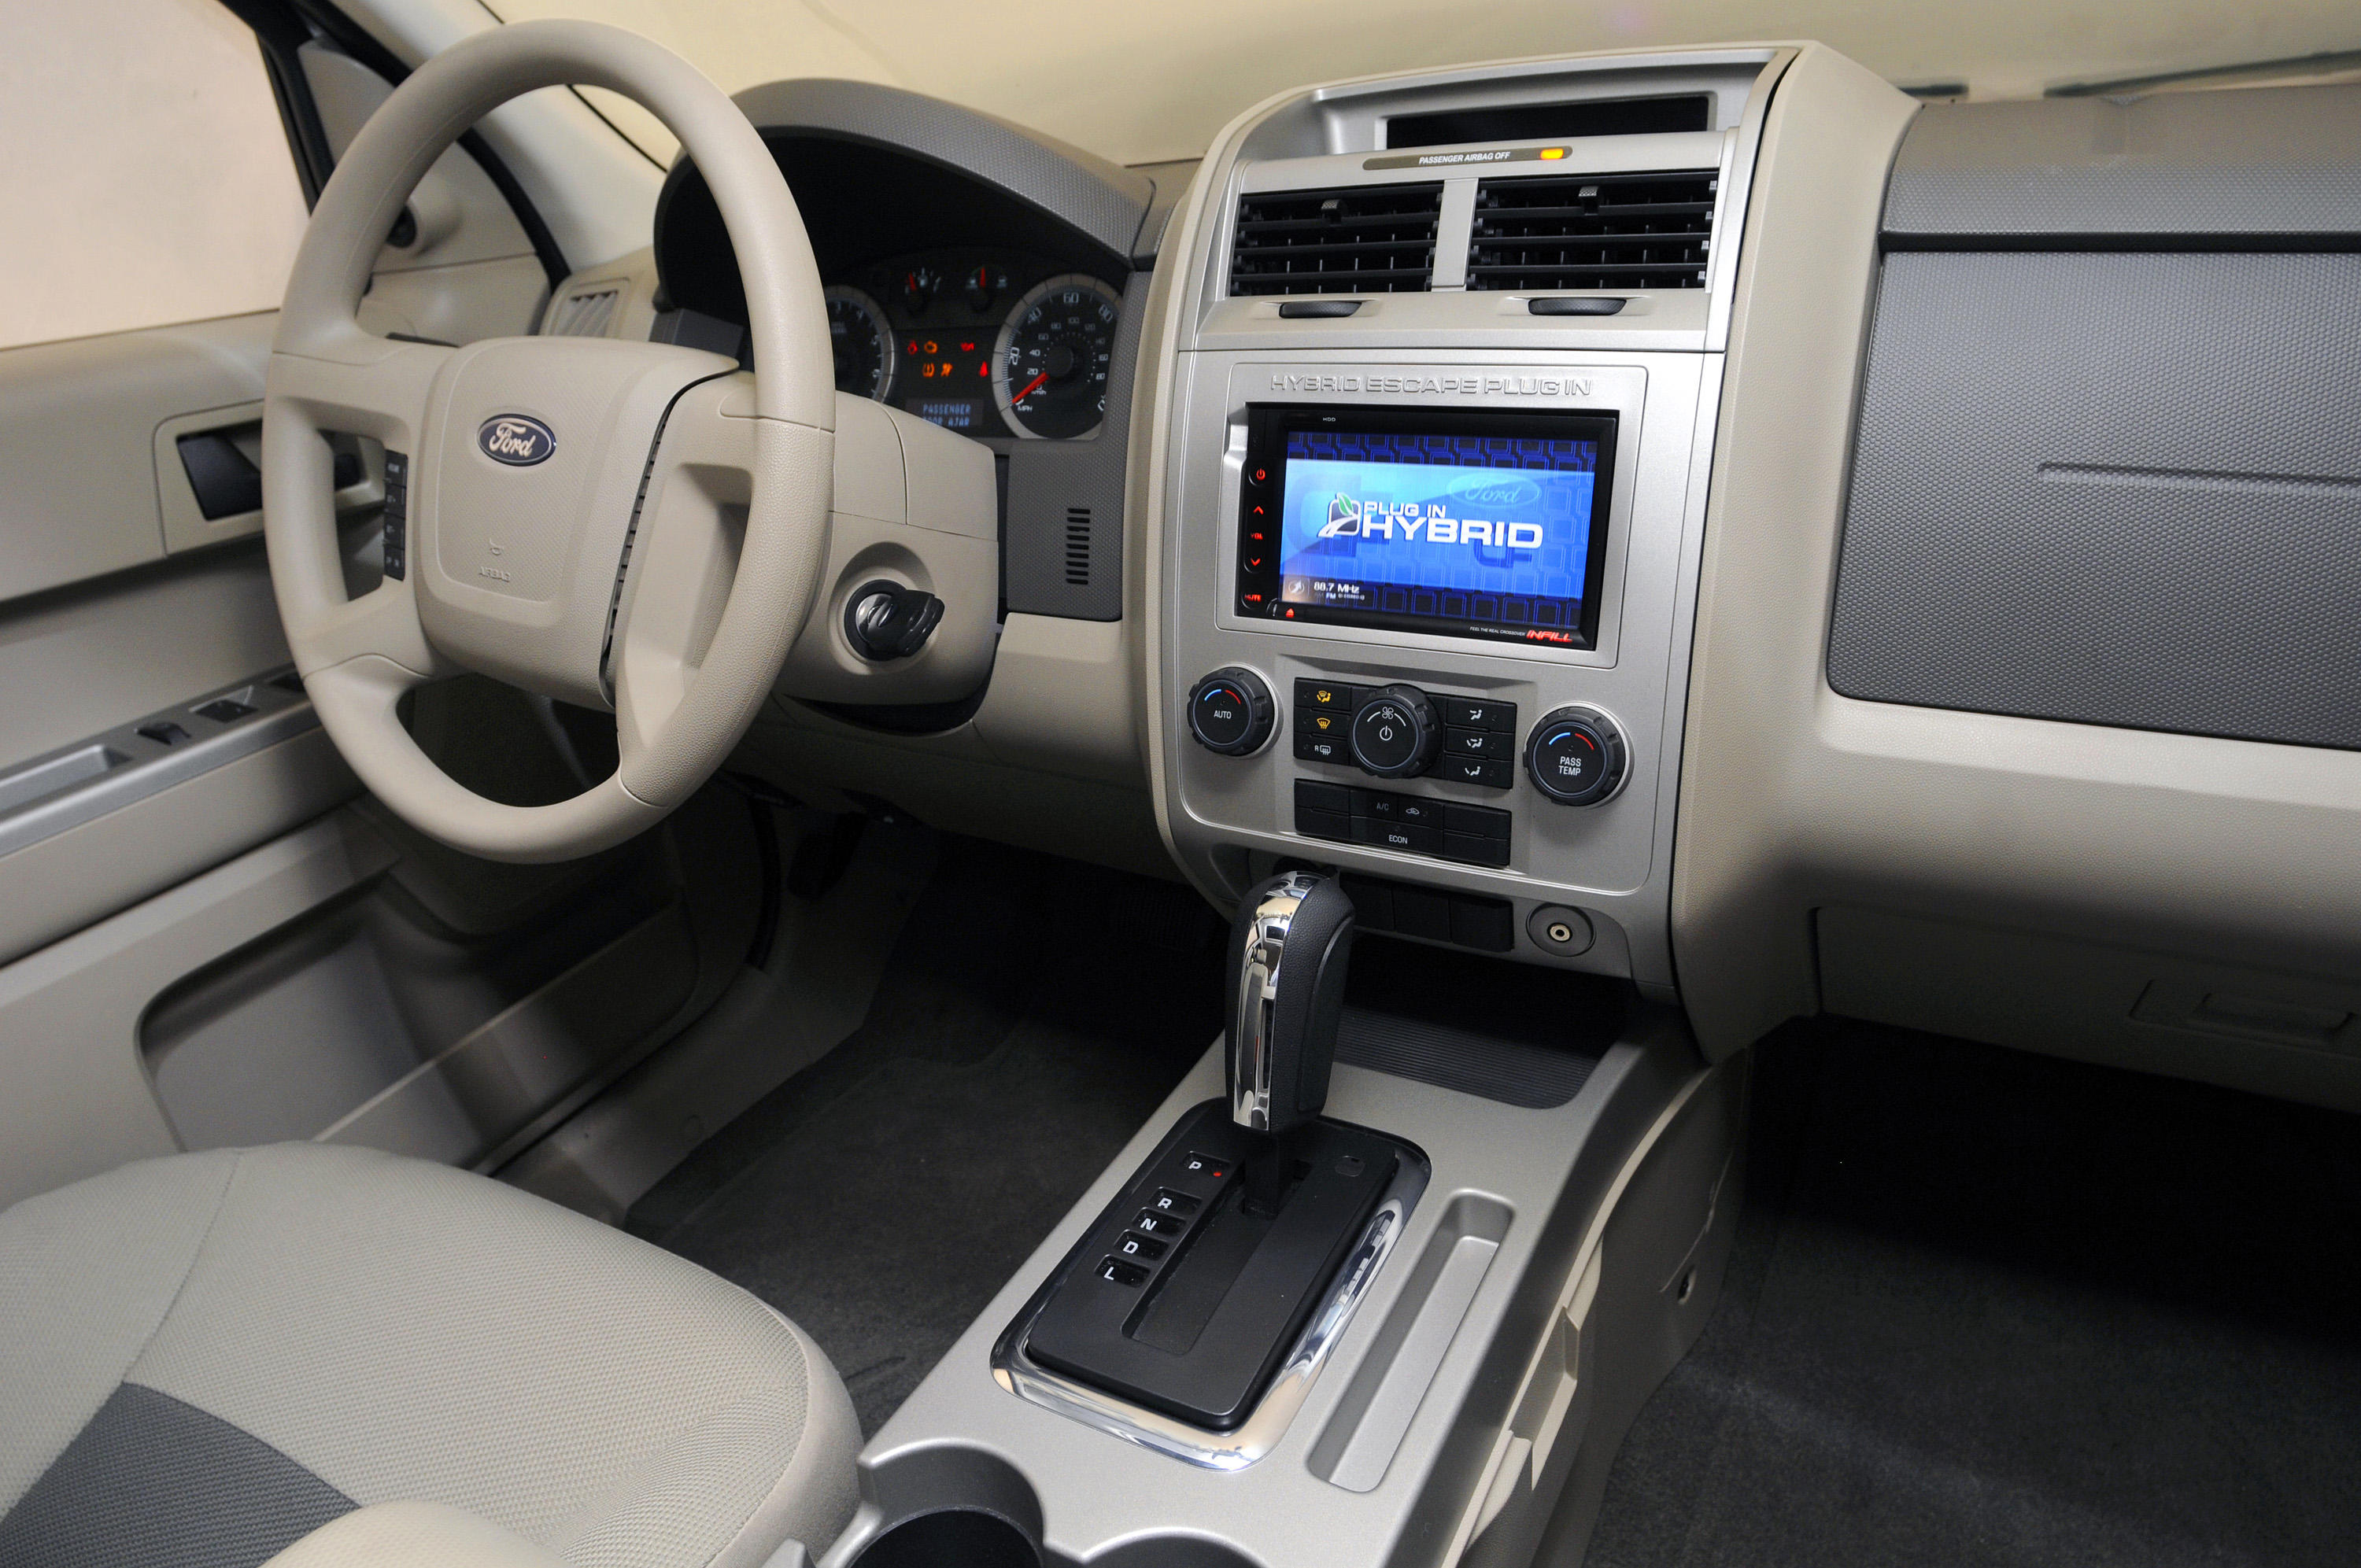 2008-ford-escape-plug-in-hybrid-interior-1